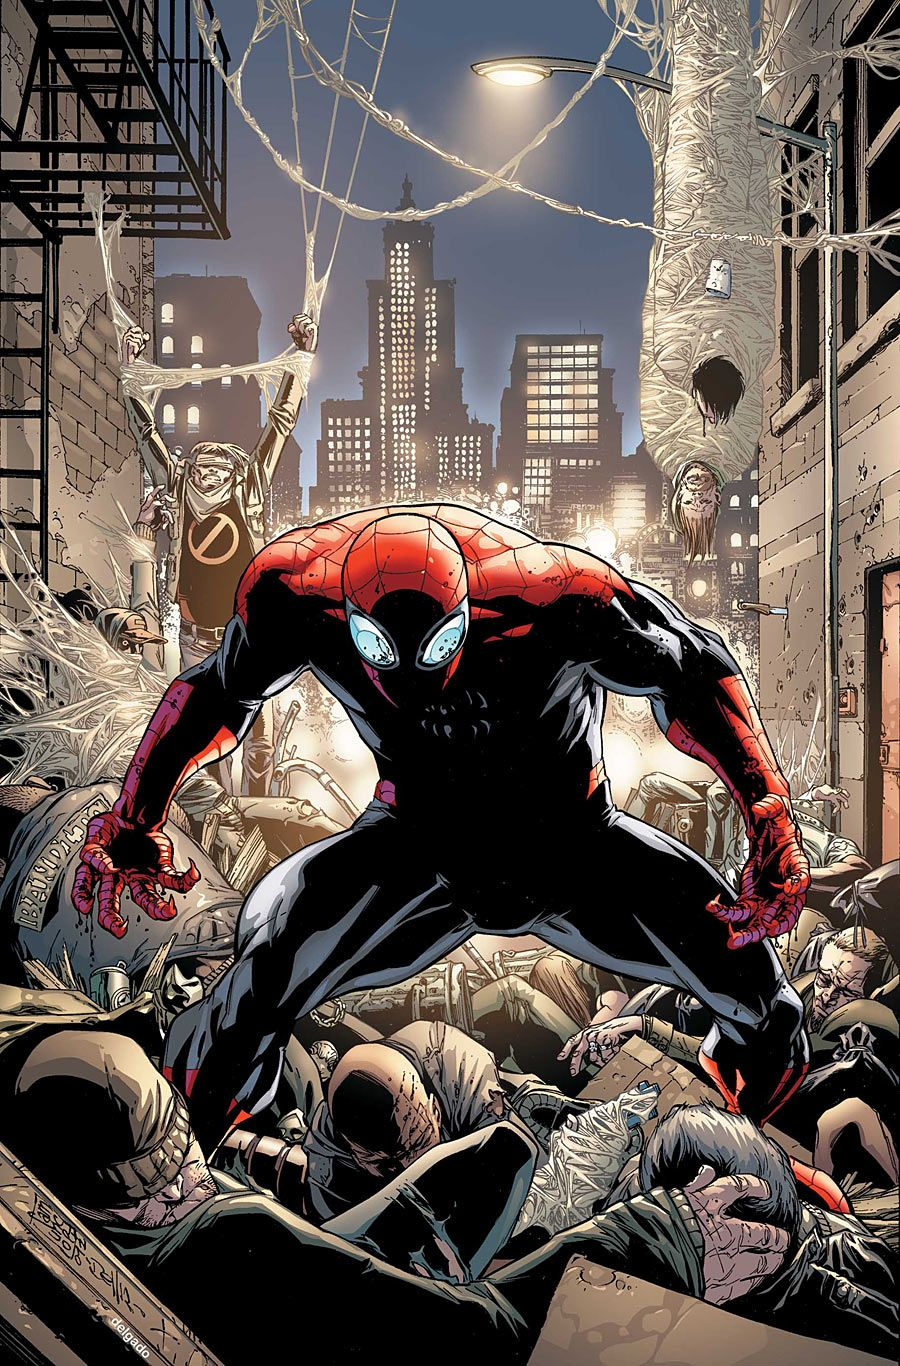 #Superior #Spiderman #Fan #Art. (SUPERIOR SPIDER-MAN #1 Variant Cover) By: Giuseppe Camuncoli. (THE * 5 * STÅR * ÅWARD * OF: * AW YEAH, IT'S MAJOR ÅWESOMENESS!!!™)[THANK Ü 4 PINNING<·><]<©>ÅÅÅ+(OB4E)